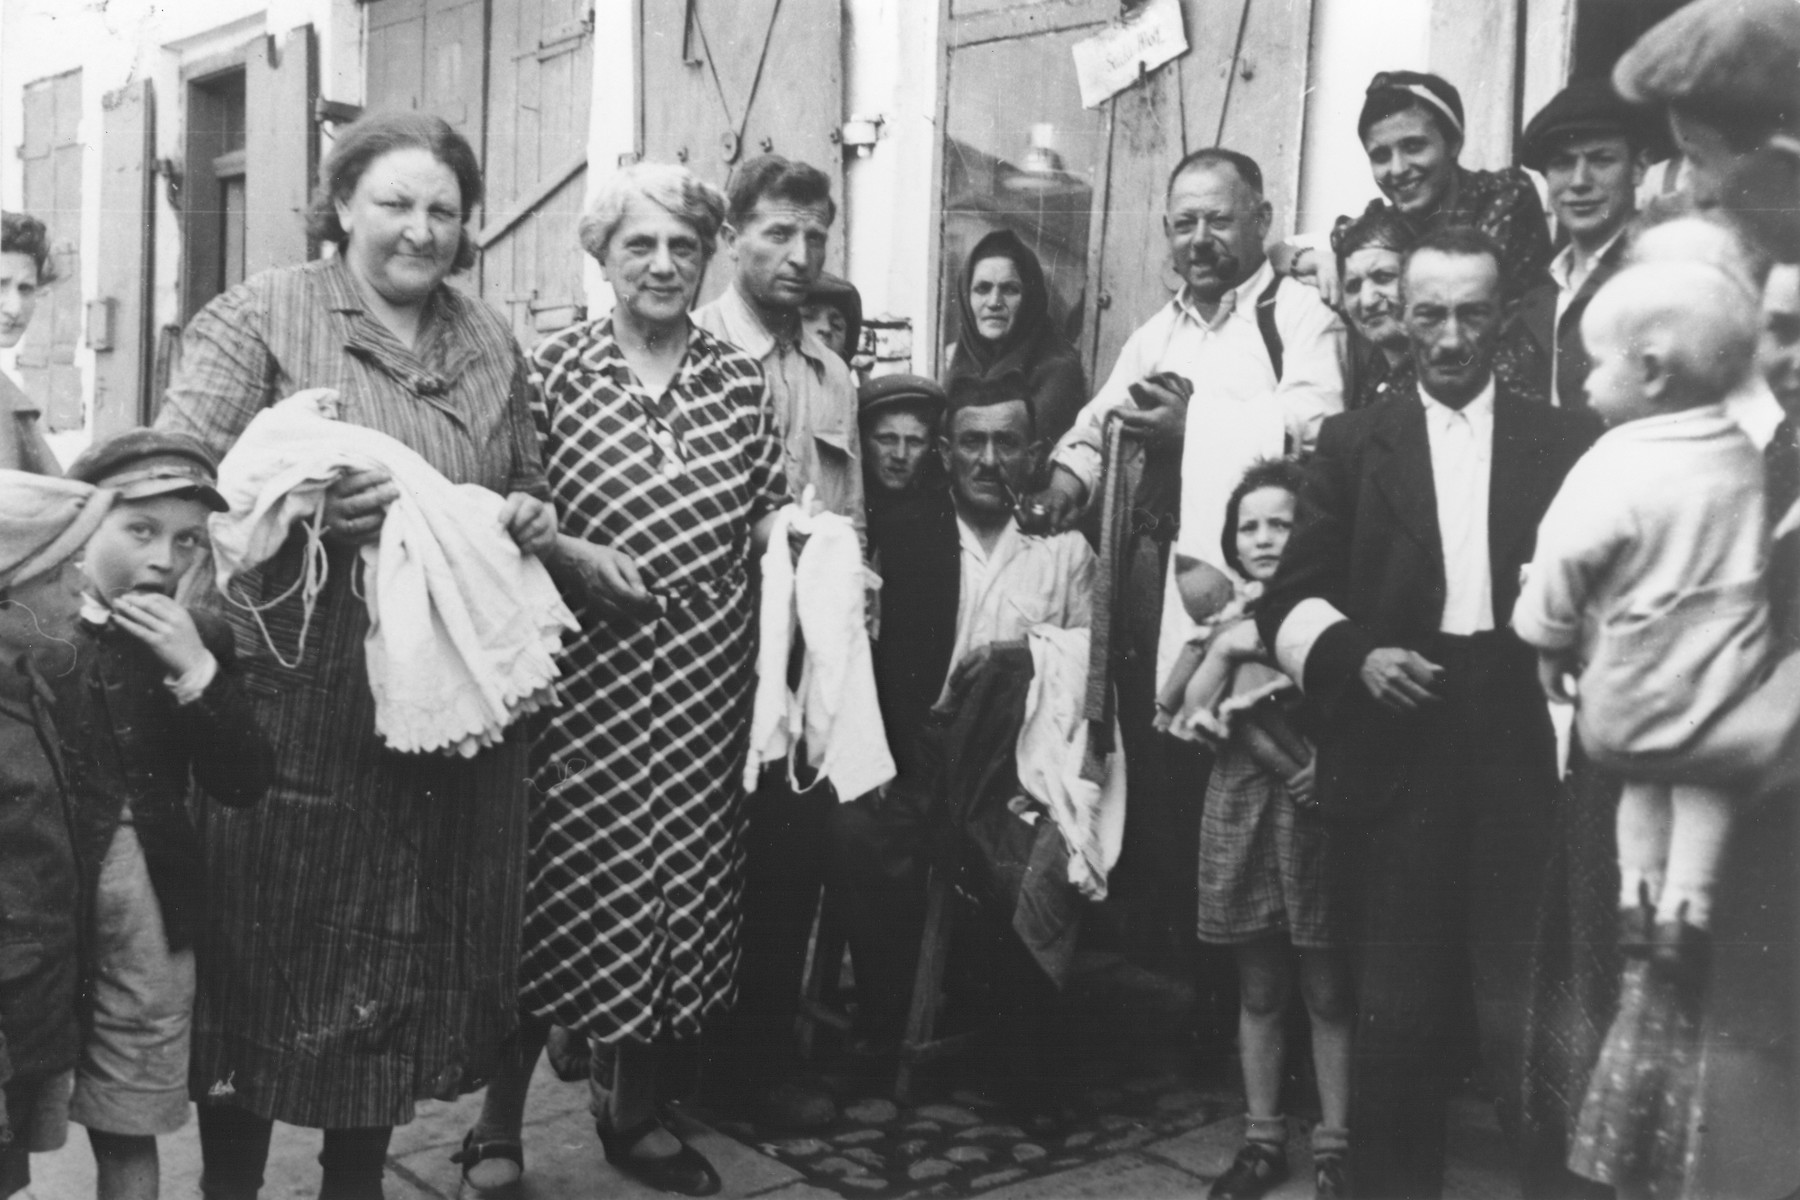 Group portrait of Jewish men, women and children on a street in the Opole Lubelskie ghetto.  Among those pictured is Wilhelm Schischa (second from the right wearing an armband).